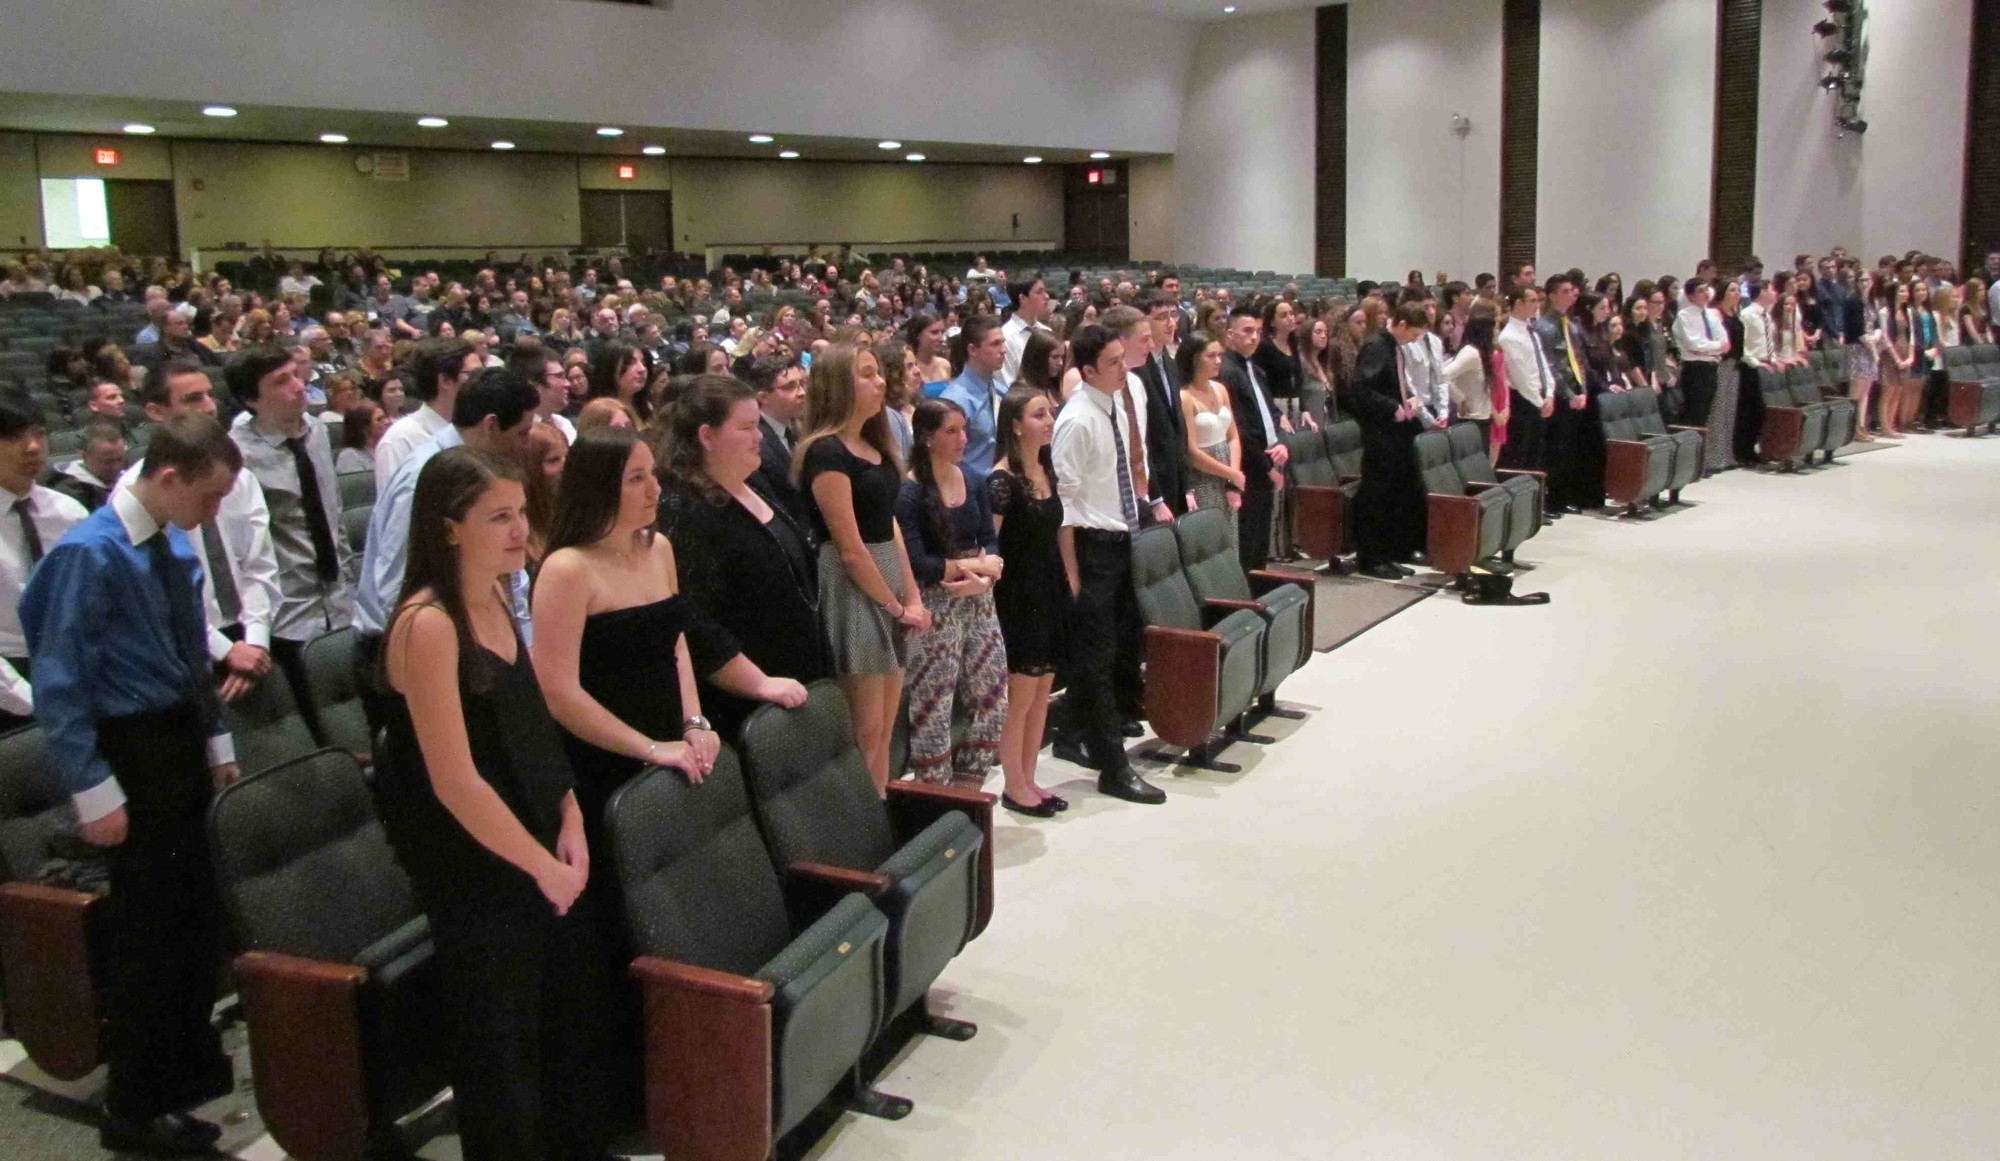 Kennedy High School students, who are from south Merrick and Bellmore, were inducted into the school's chapter of the National Honor Society on April 9.